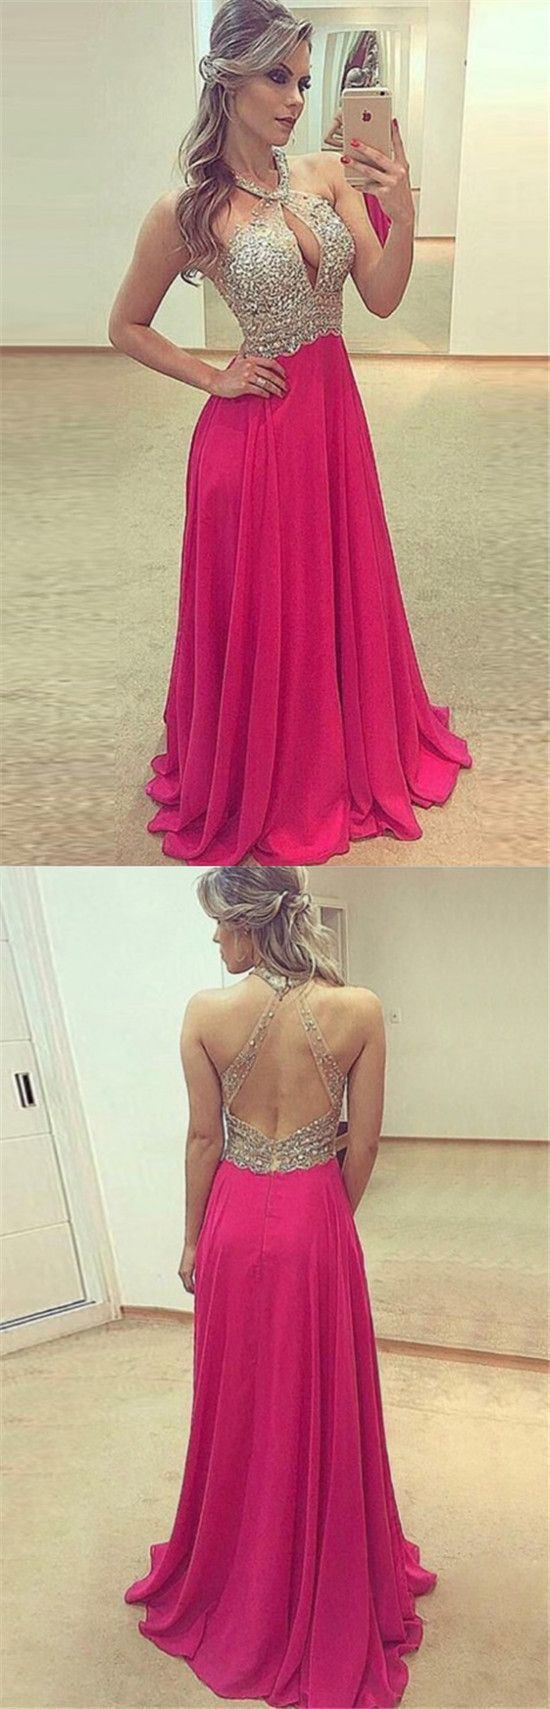 A-Line Jewel Keyhole Beading Fuchsia Chiffon Prom Dress with Open Back